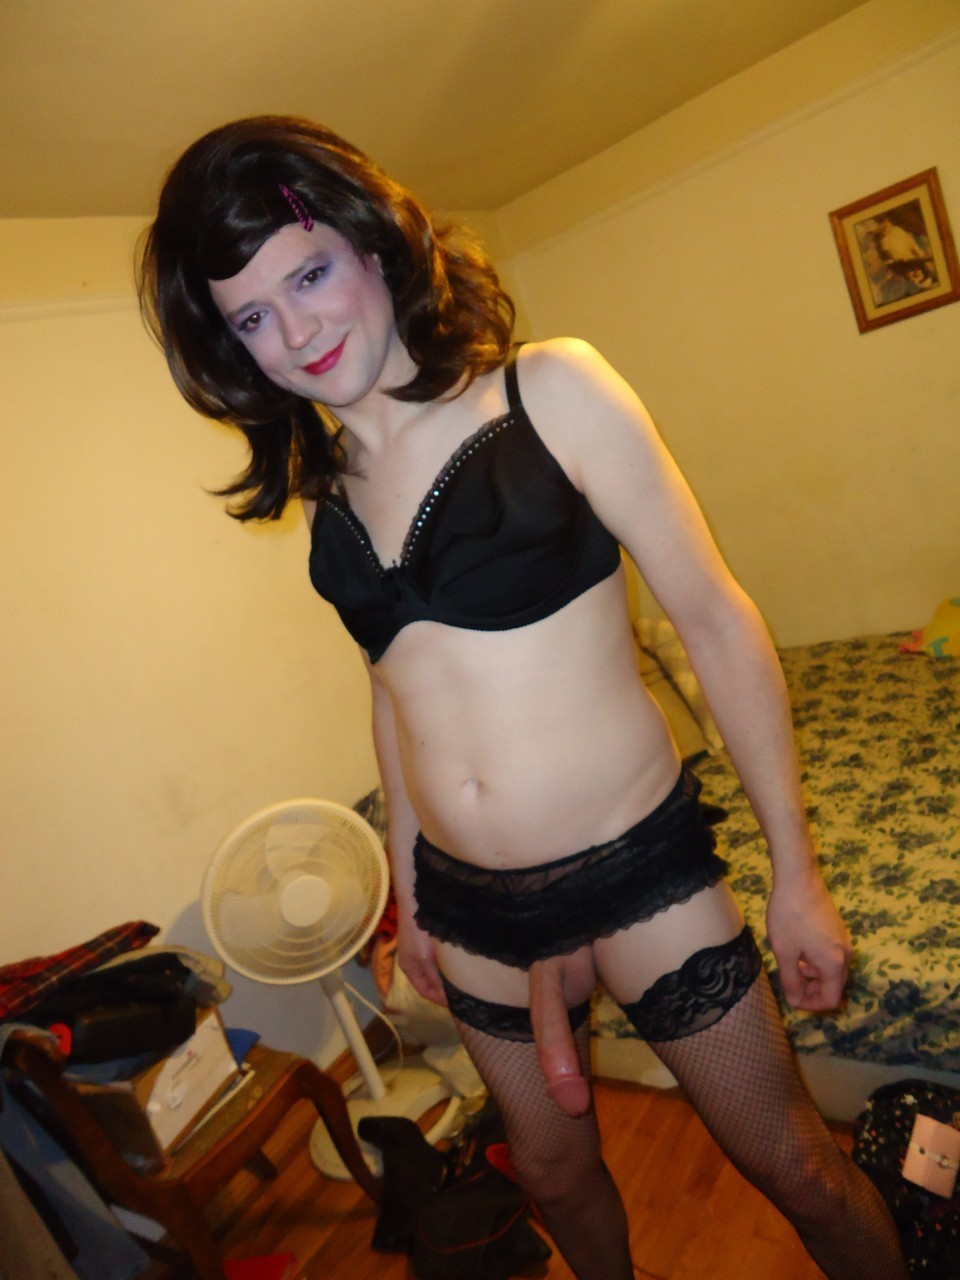 crossdressing-habit:  other crossdressing photos: http://bit.ly/13lEKI5 Did you know these celebrities are gay: http://bit.ly/14znno8